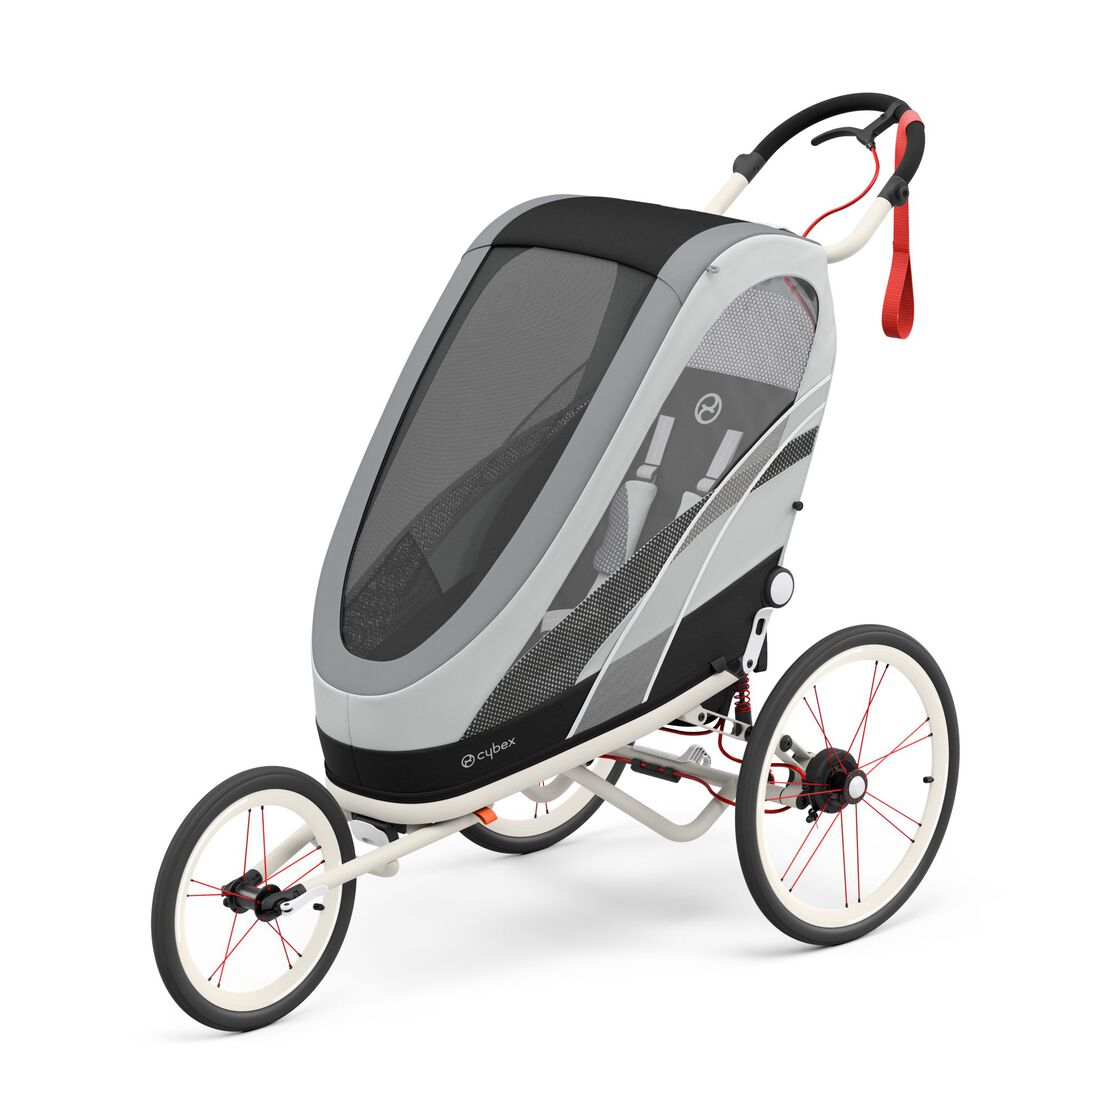 CYBEX Zeno Seat Pack - Medal Grey in Medal Grey large image number 2